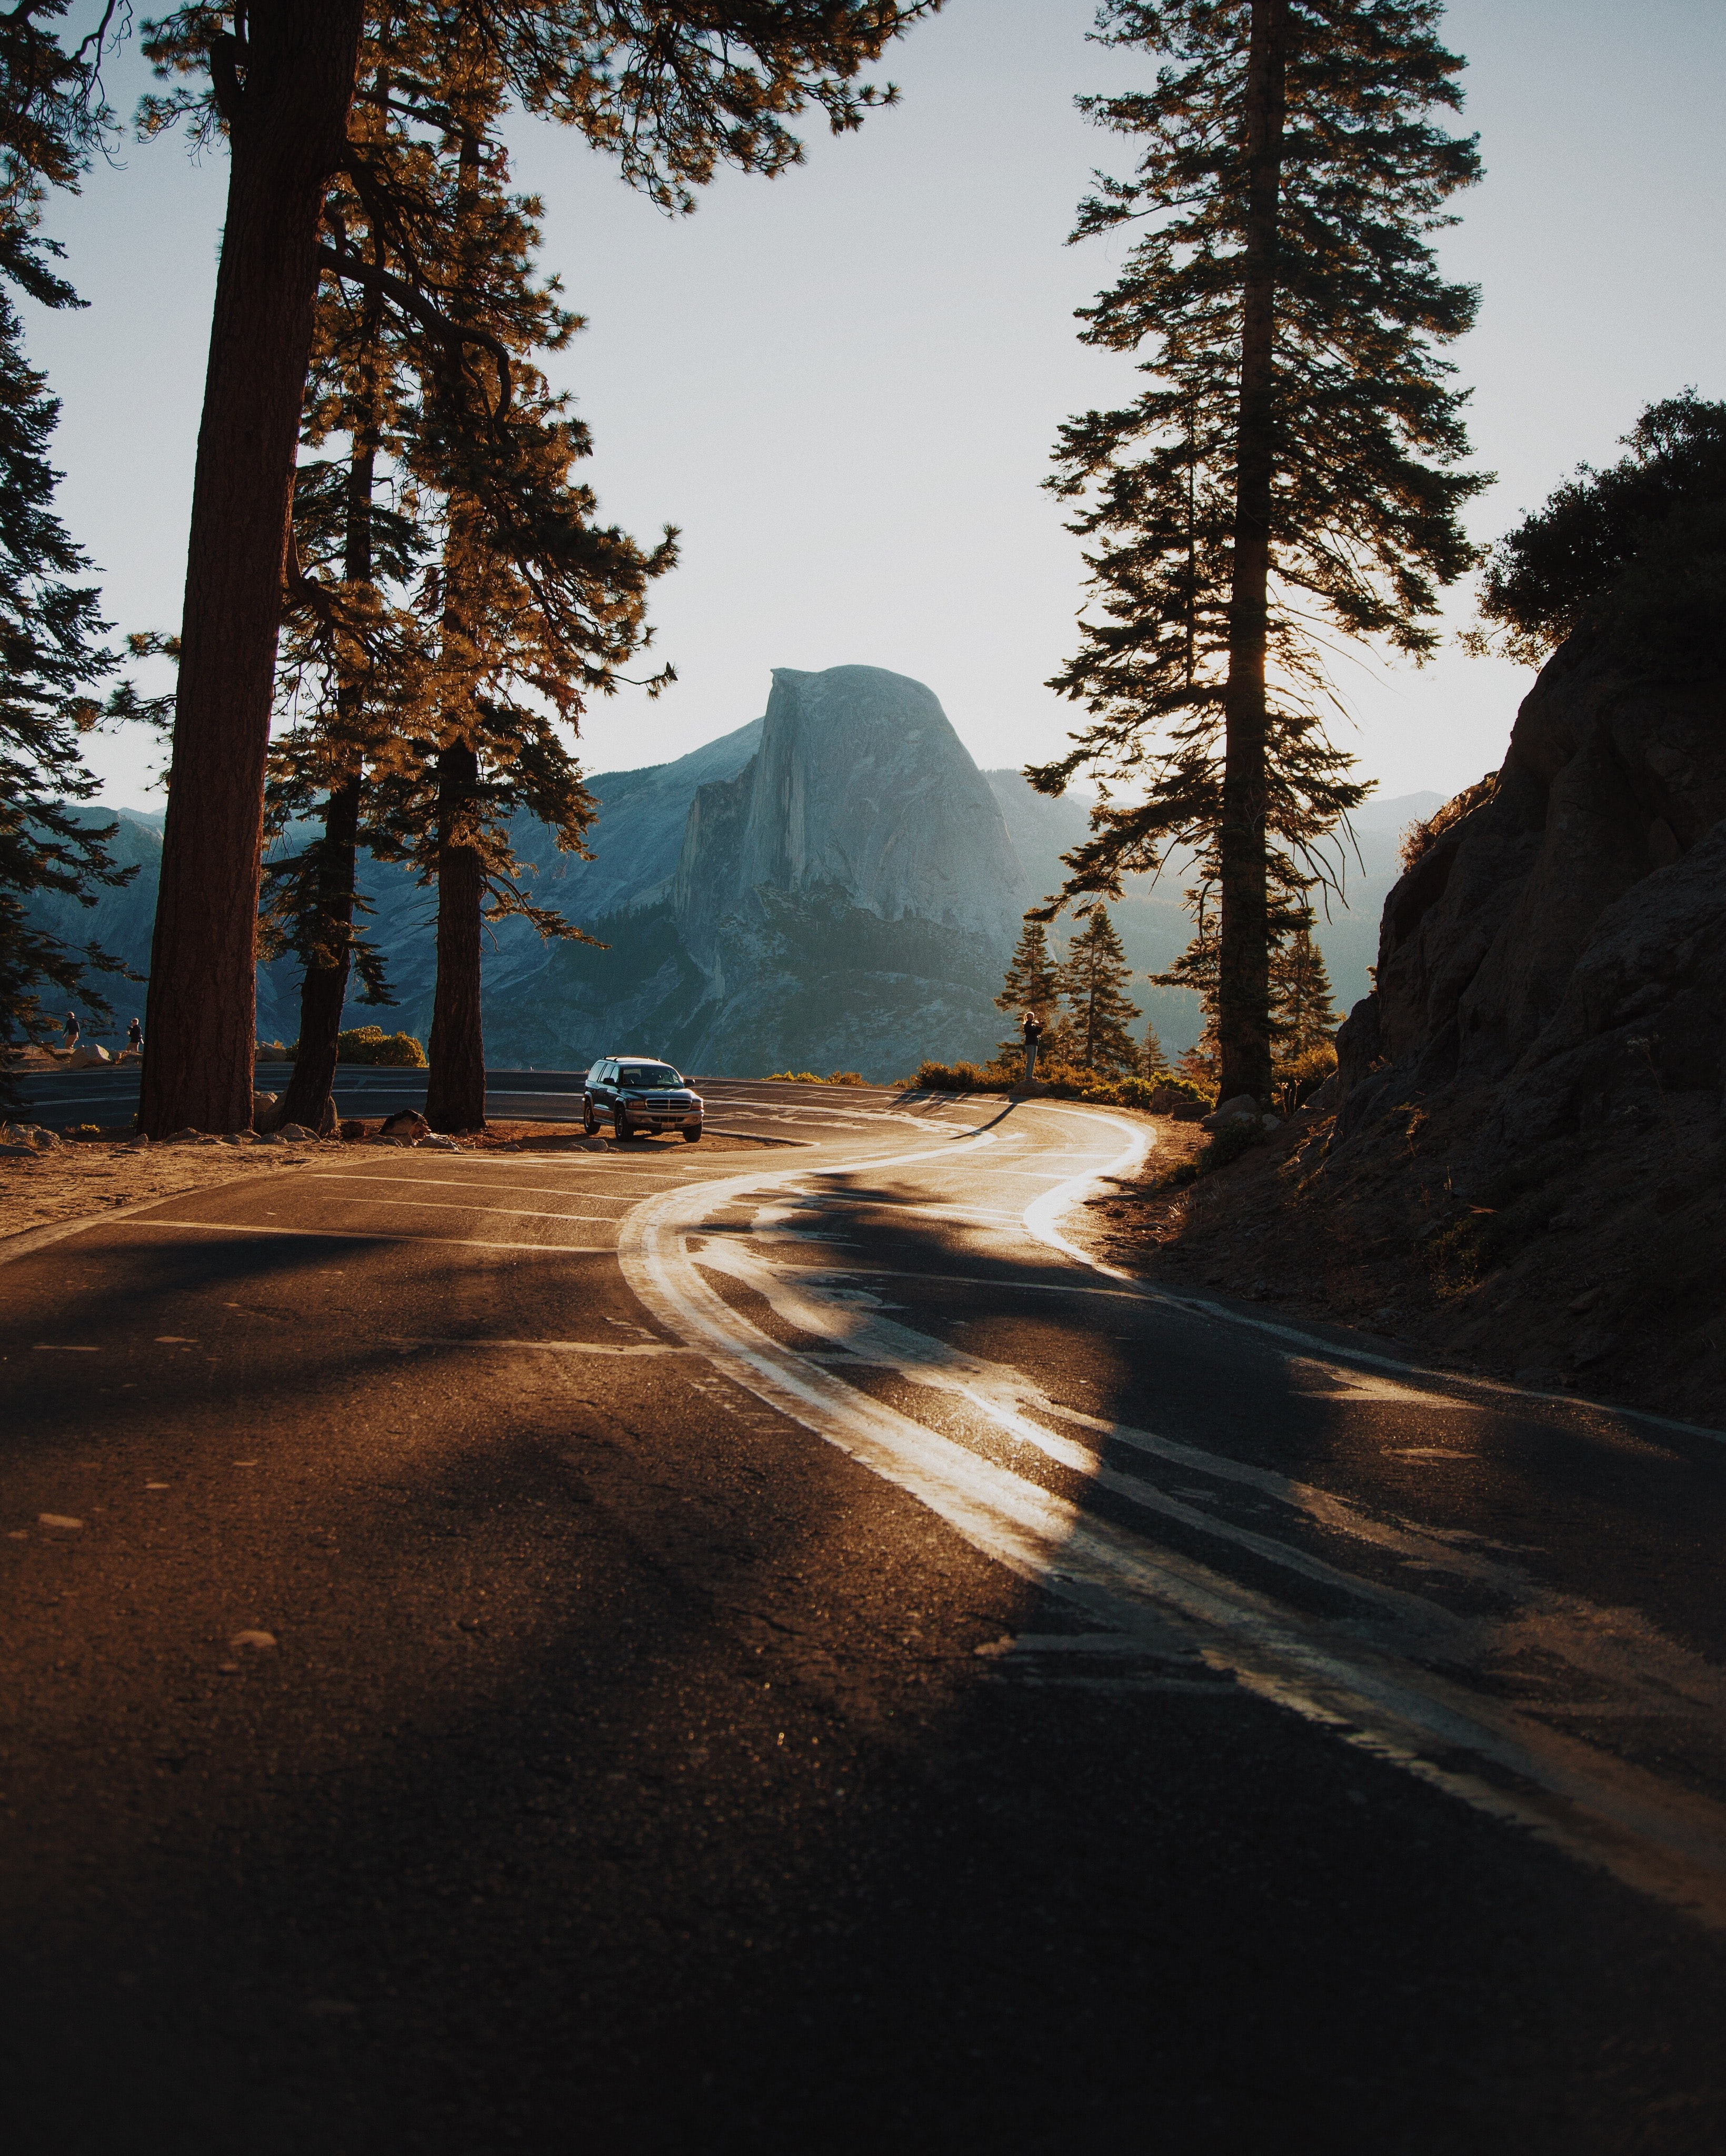 An SUV driving on a curve in a mountain road in sunlight